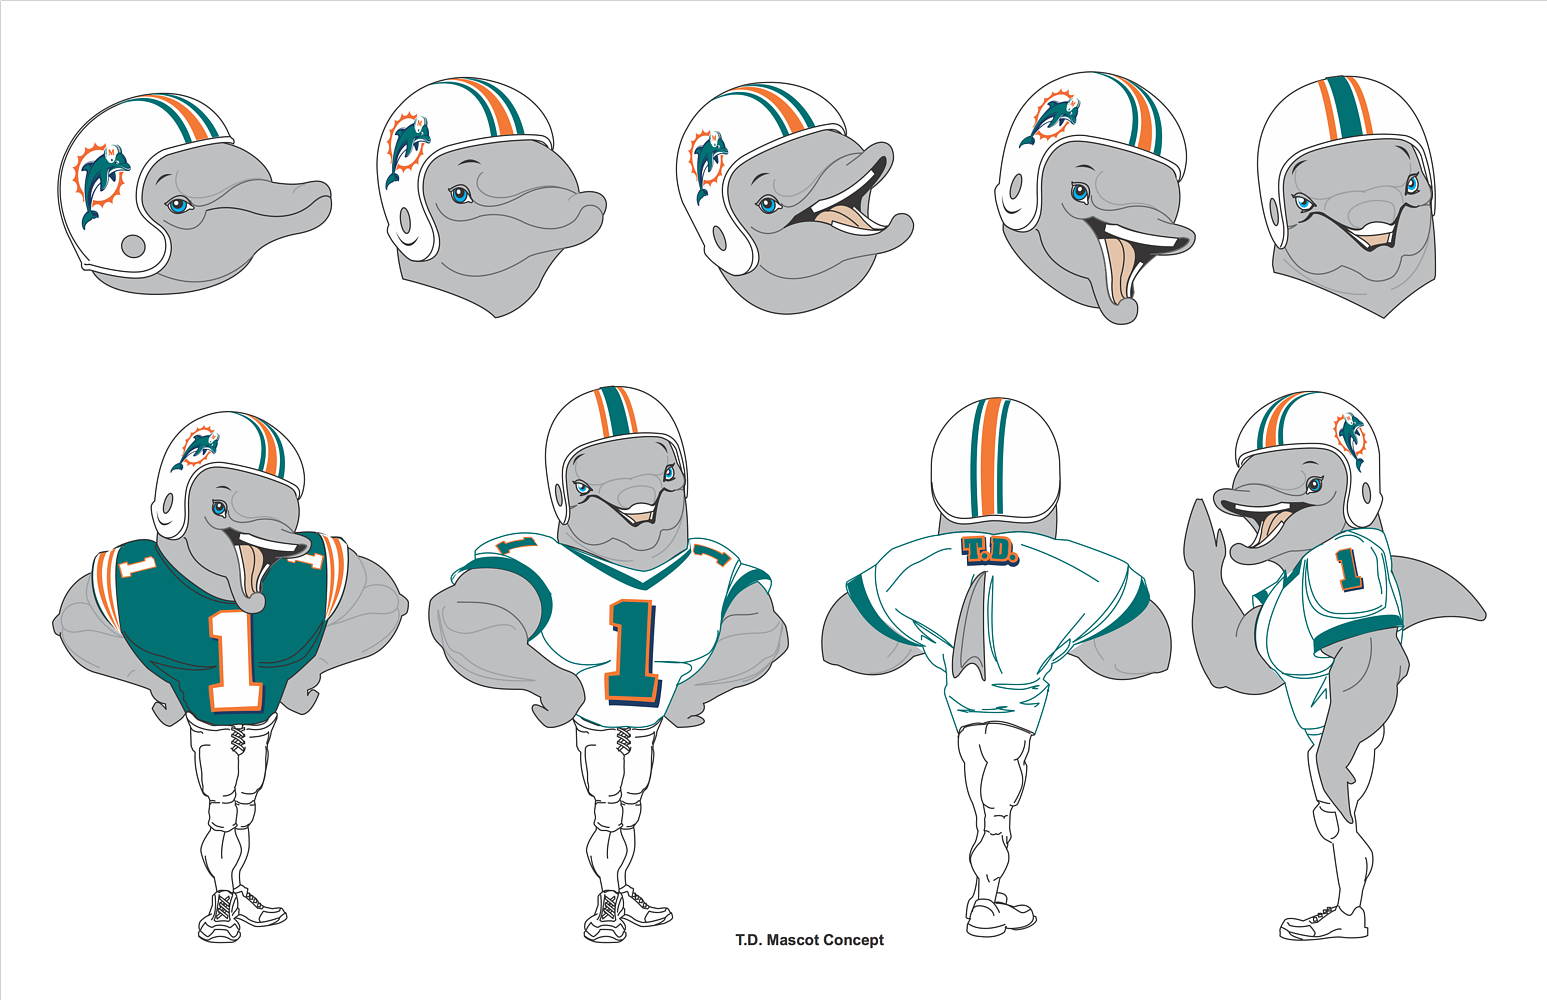 Dolphins Mascot Concepts by Steve Ferris